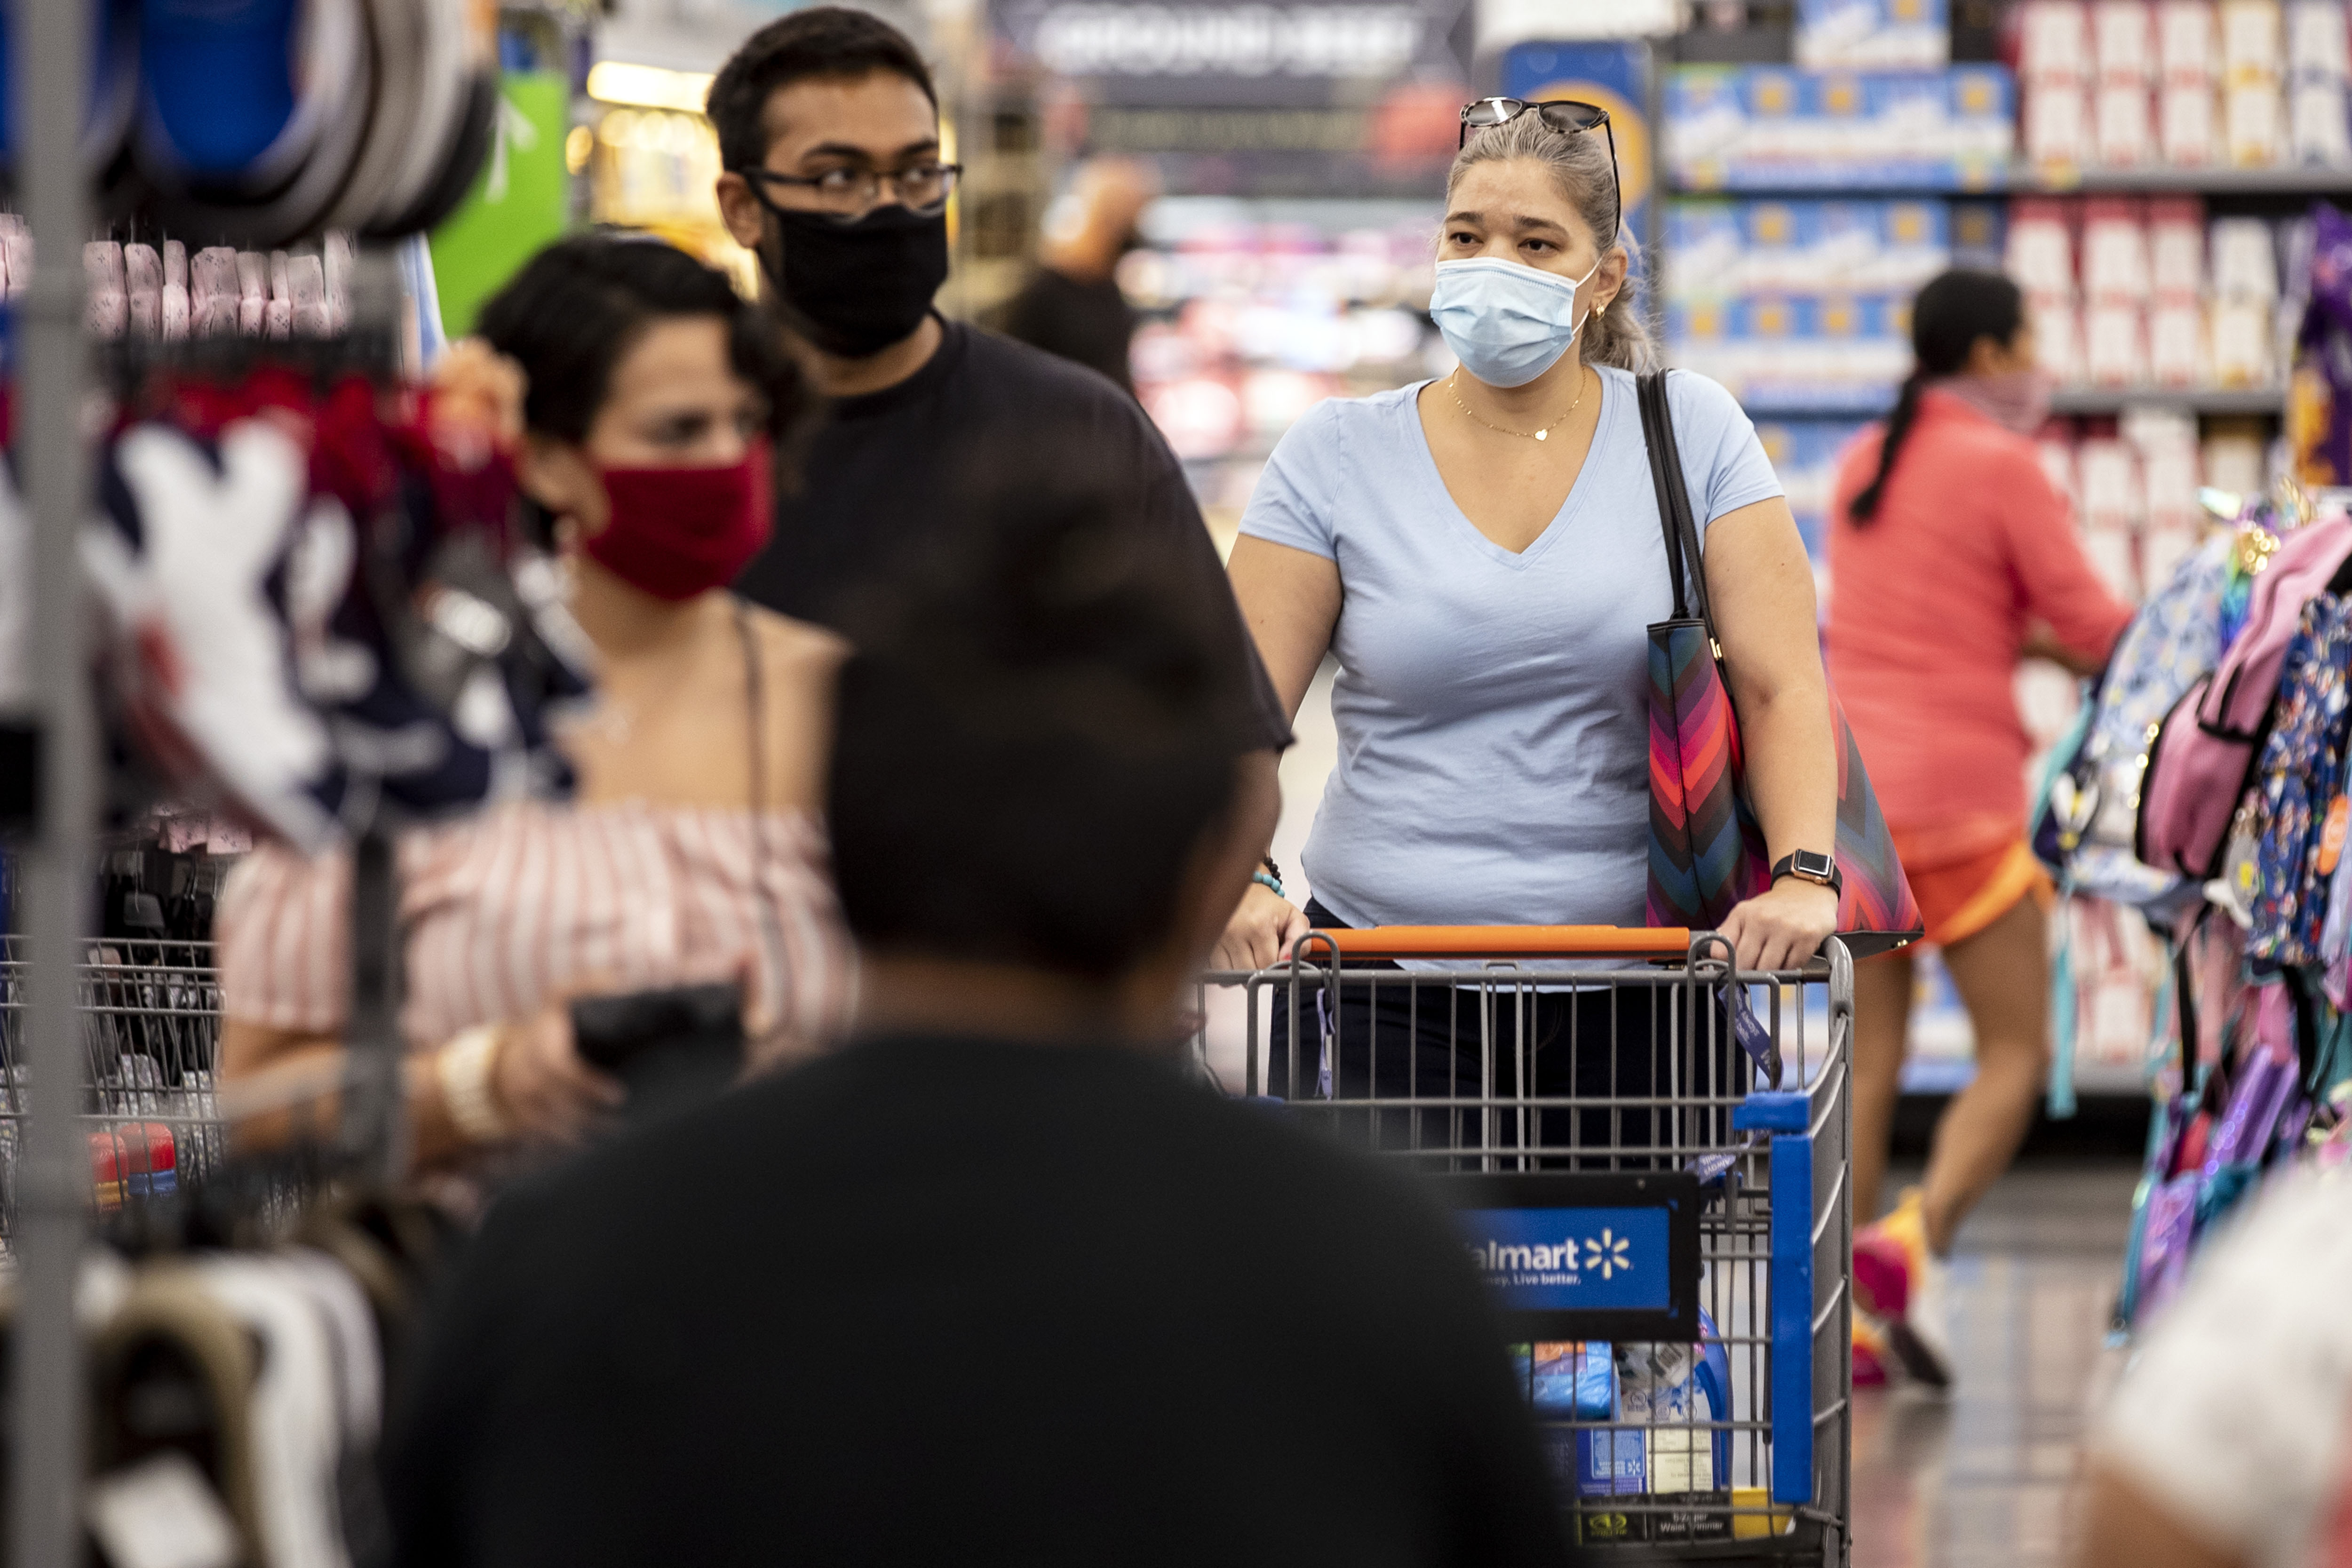 People shop at a Walmart in Burbank, California, on July 15.